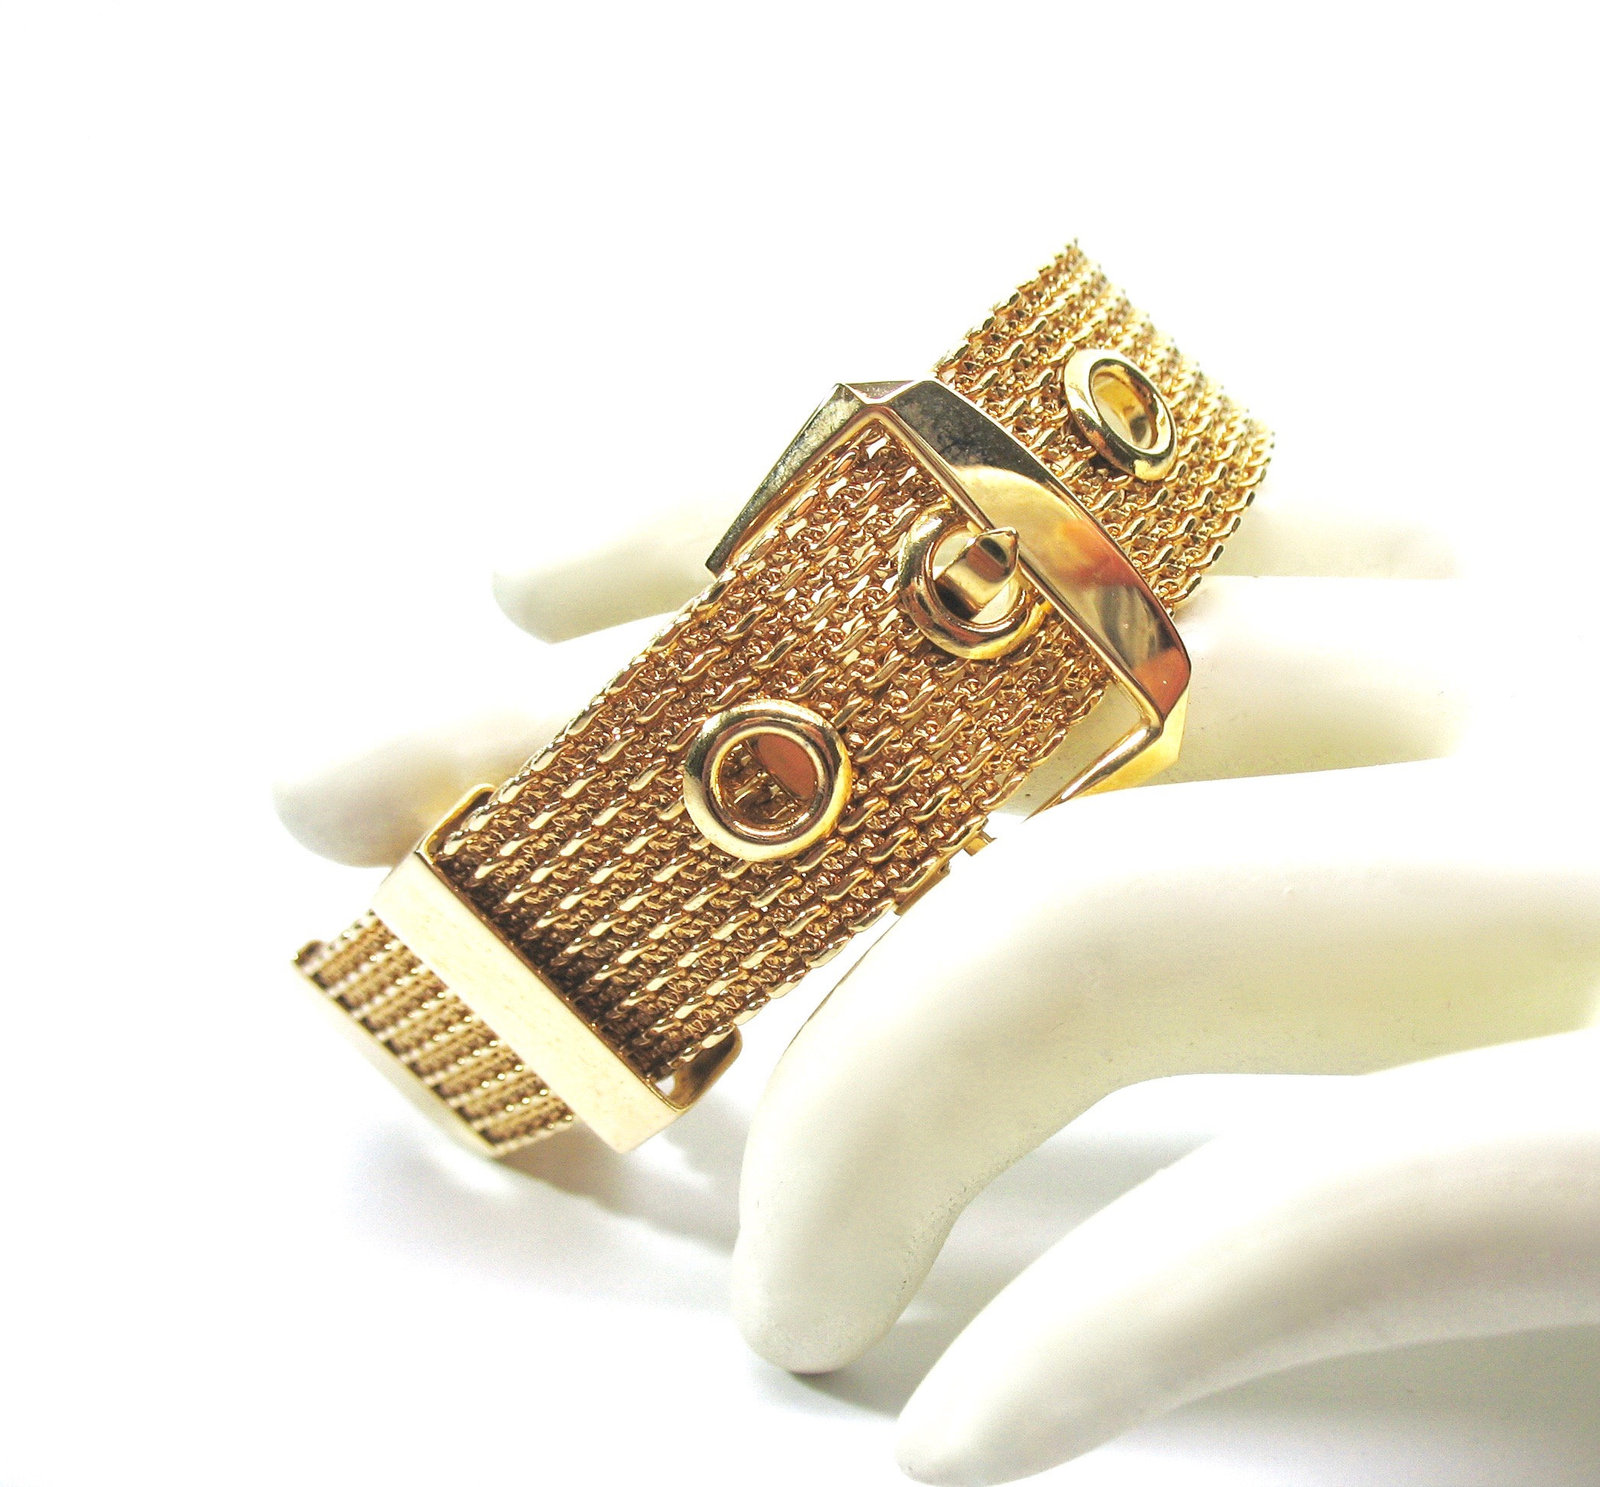 Mesh Buckle Bracelet, Gold Tone, Avon, 1970's, Adjustable, Signed Collectible, D image 2